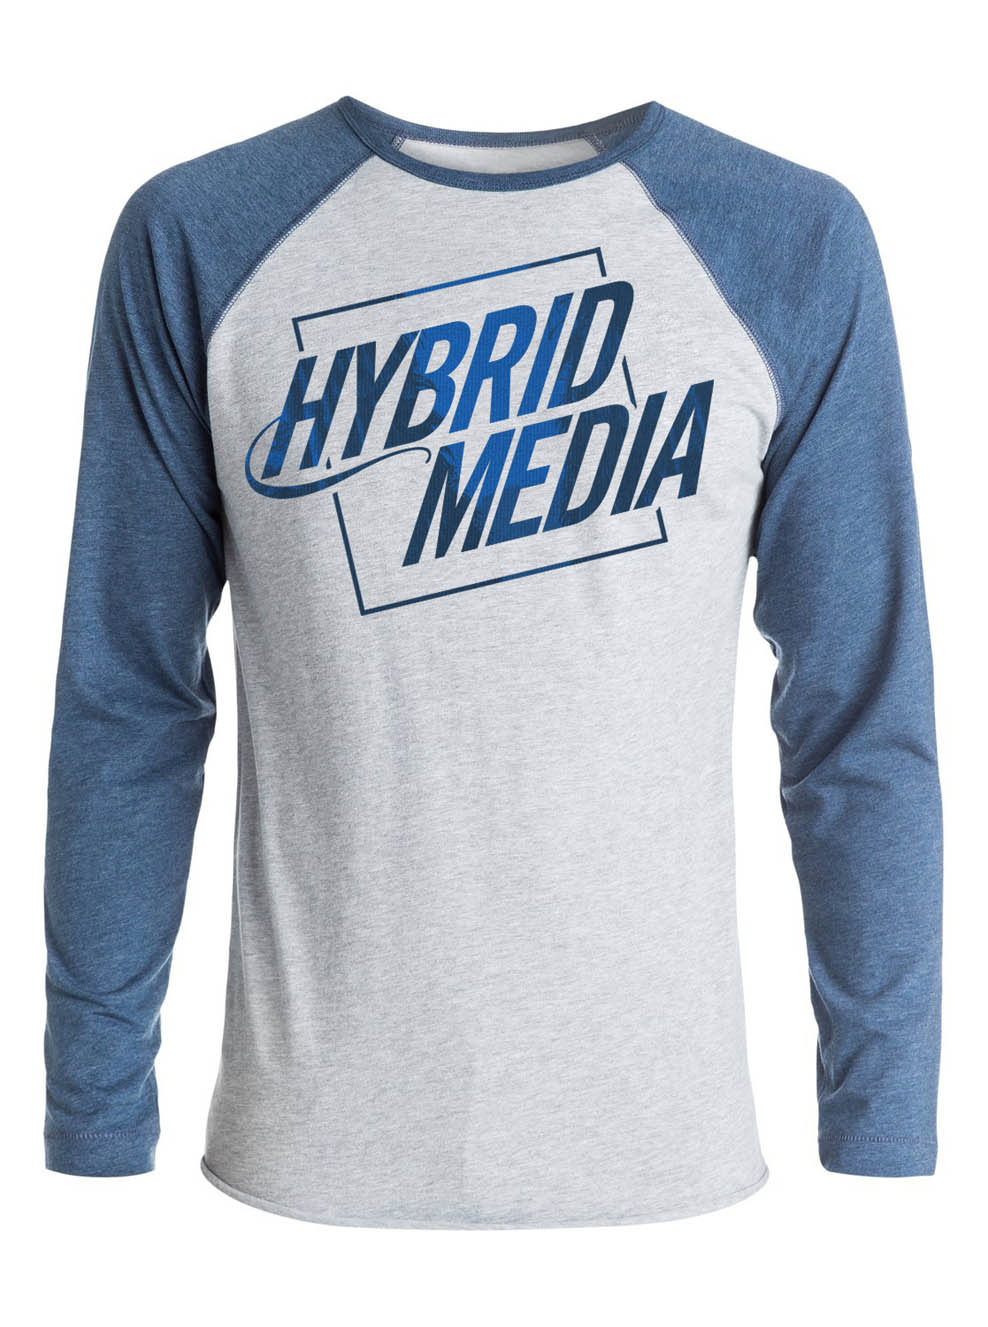 Apparel Design | Hybrid Media Long Sleeve